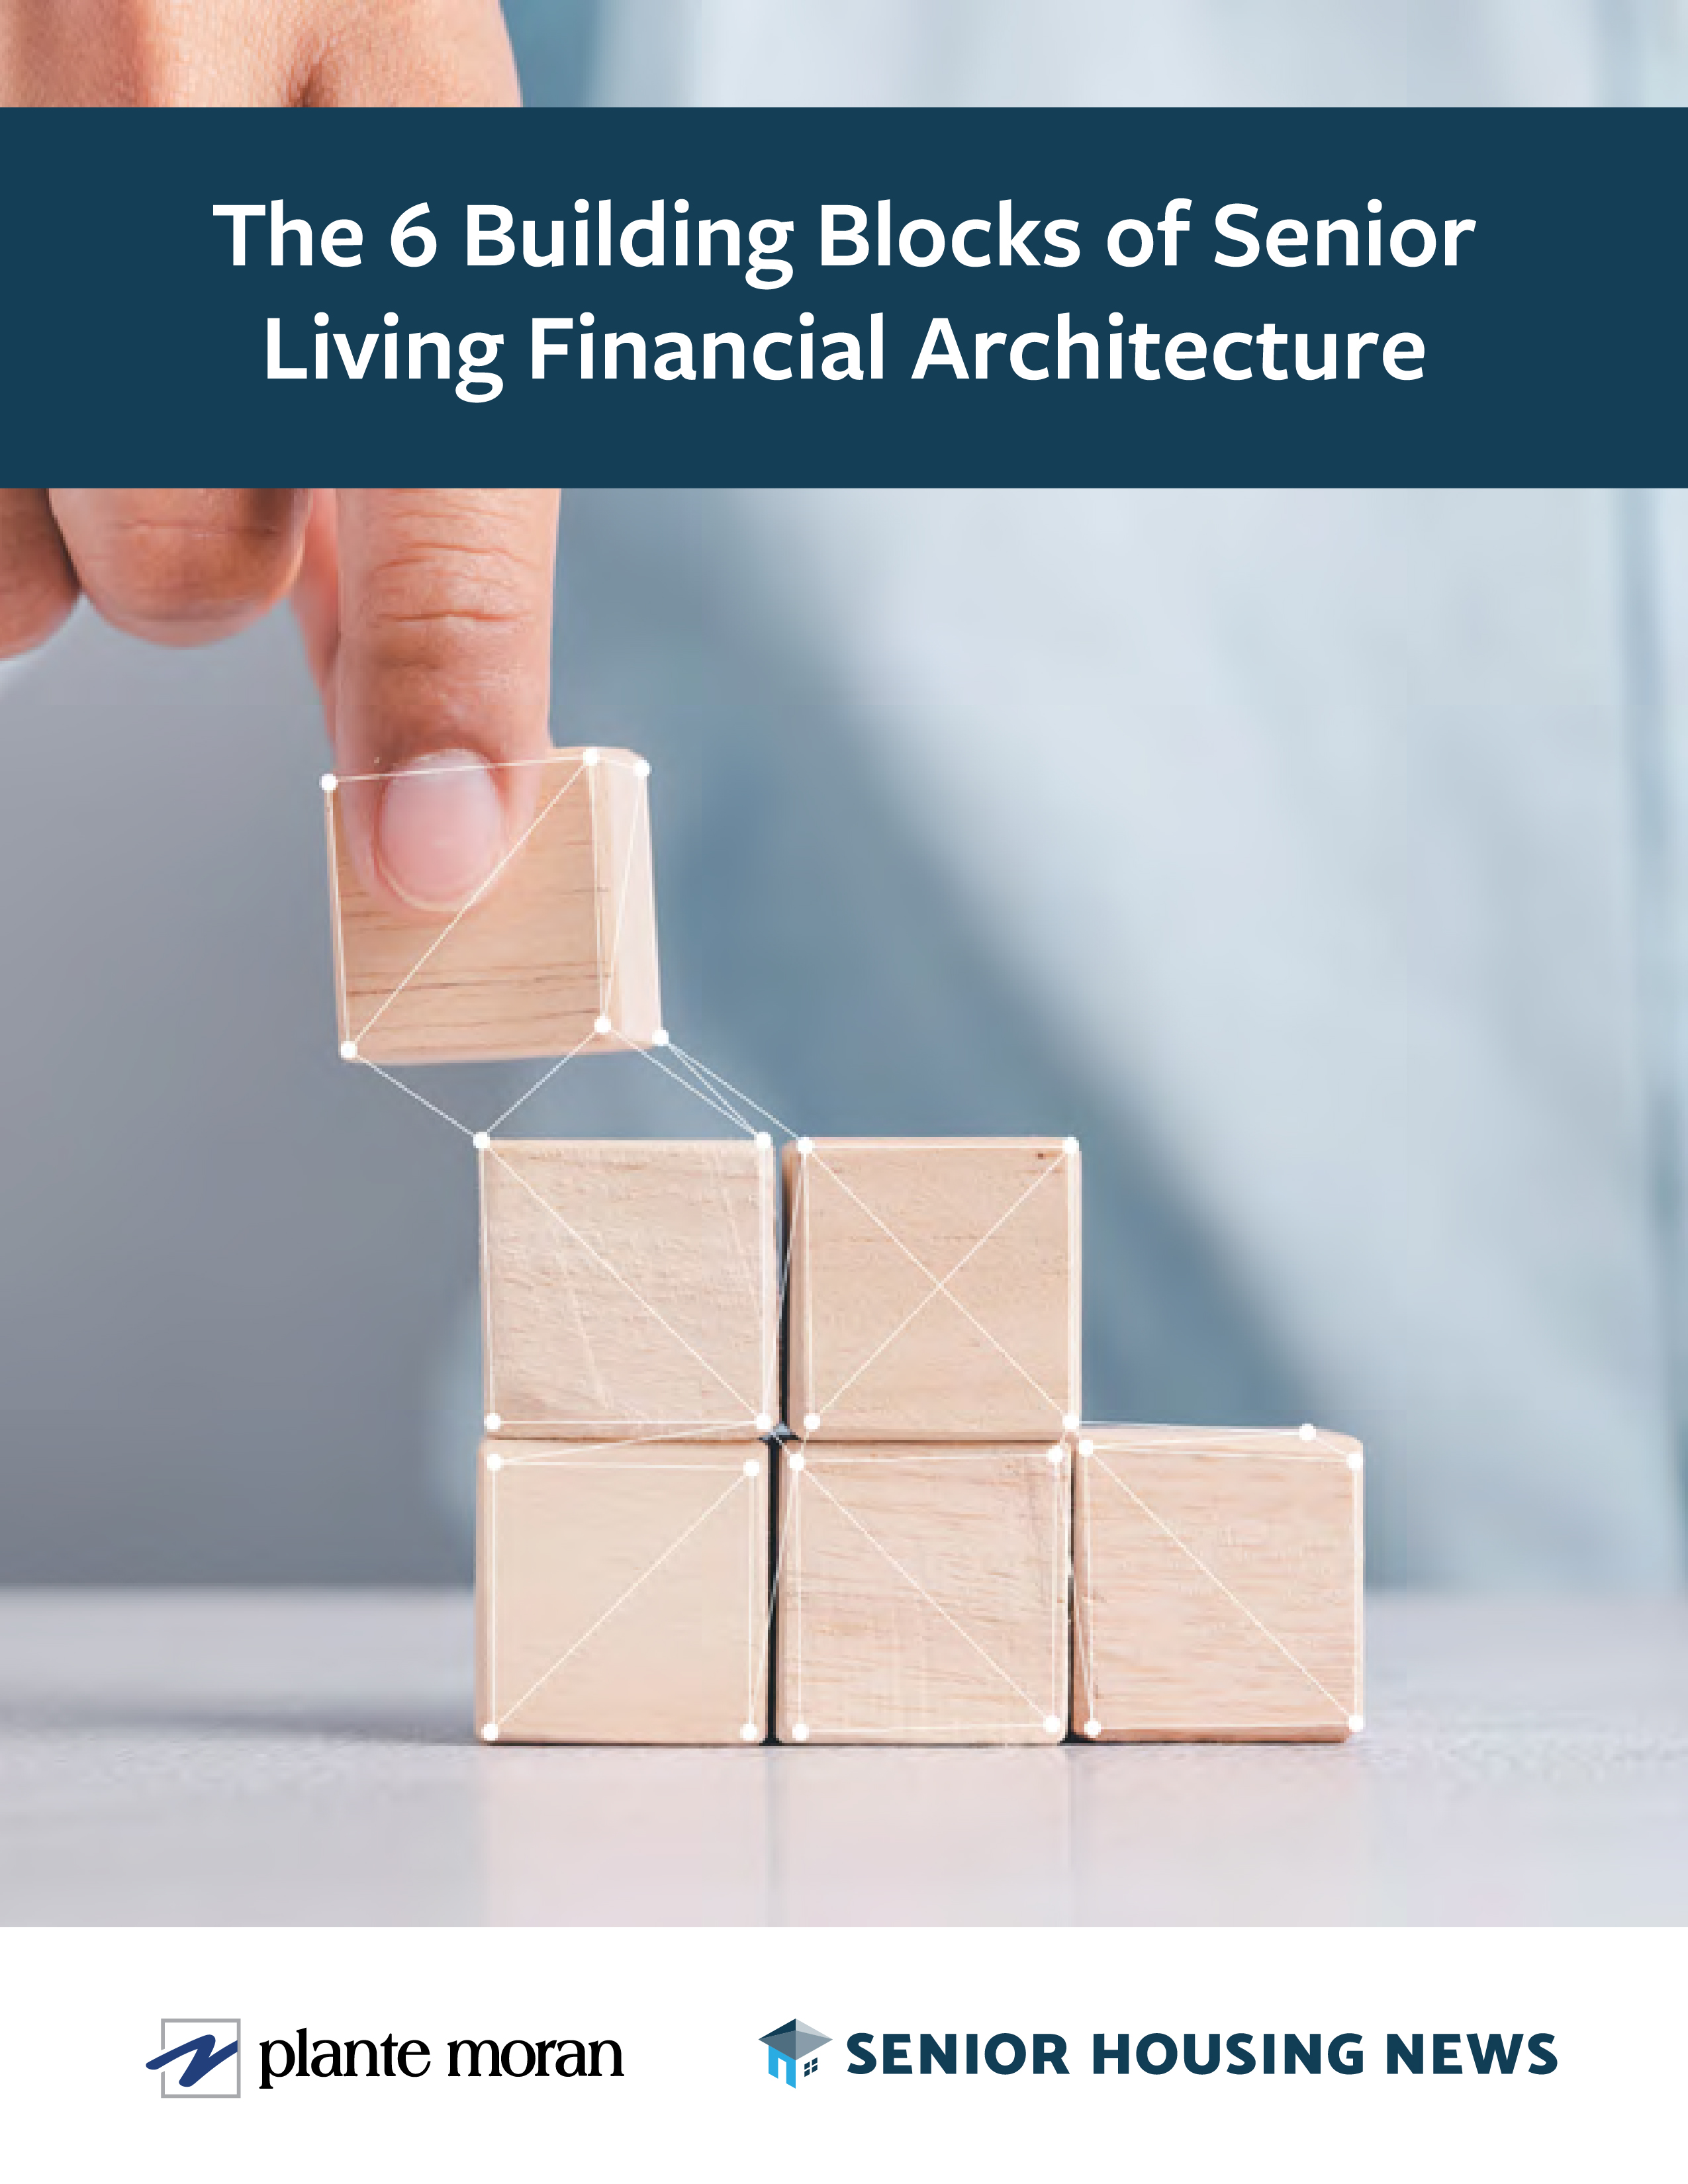 [White Paper] The 6 Building Blocks of Senior Living Financial Architecture